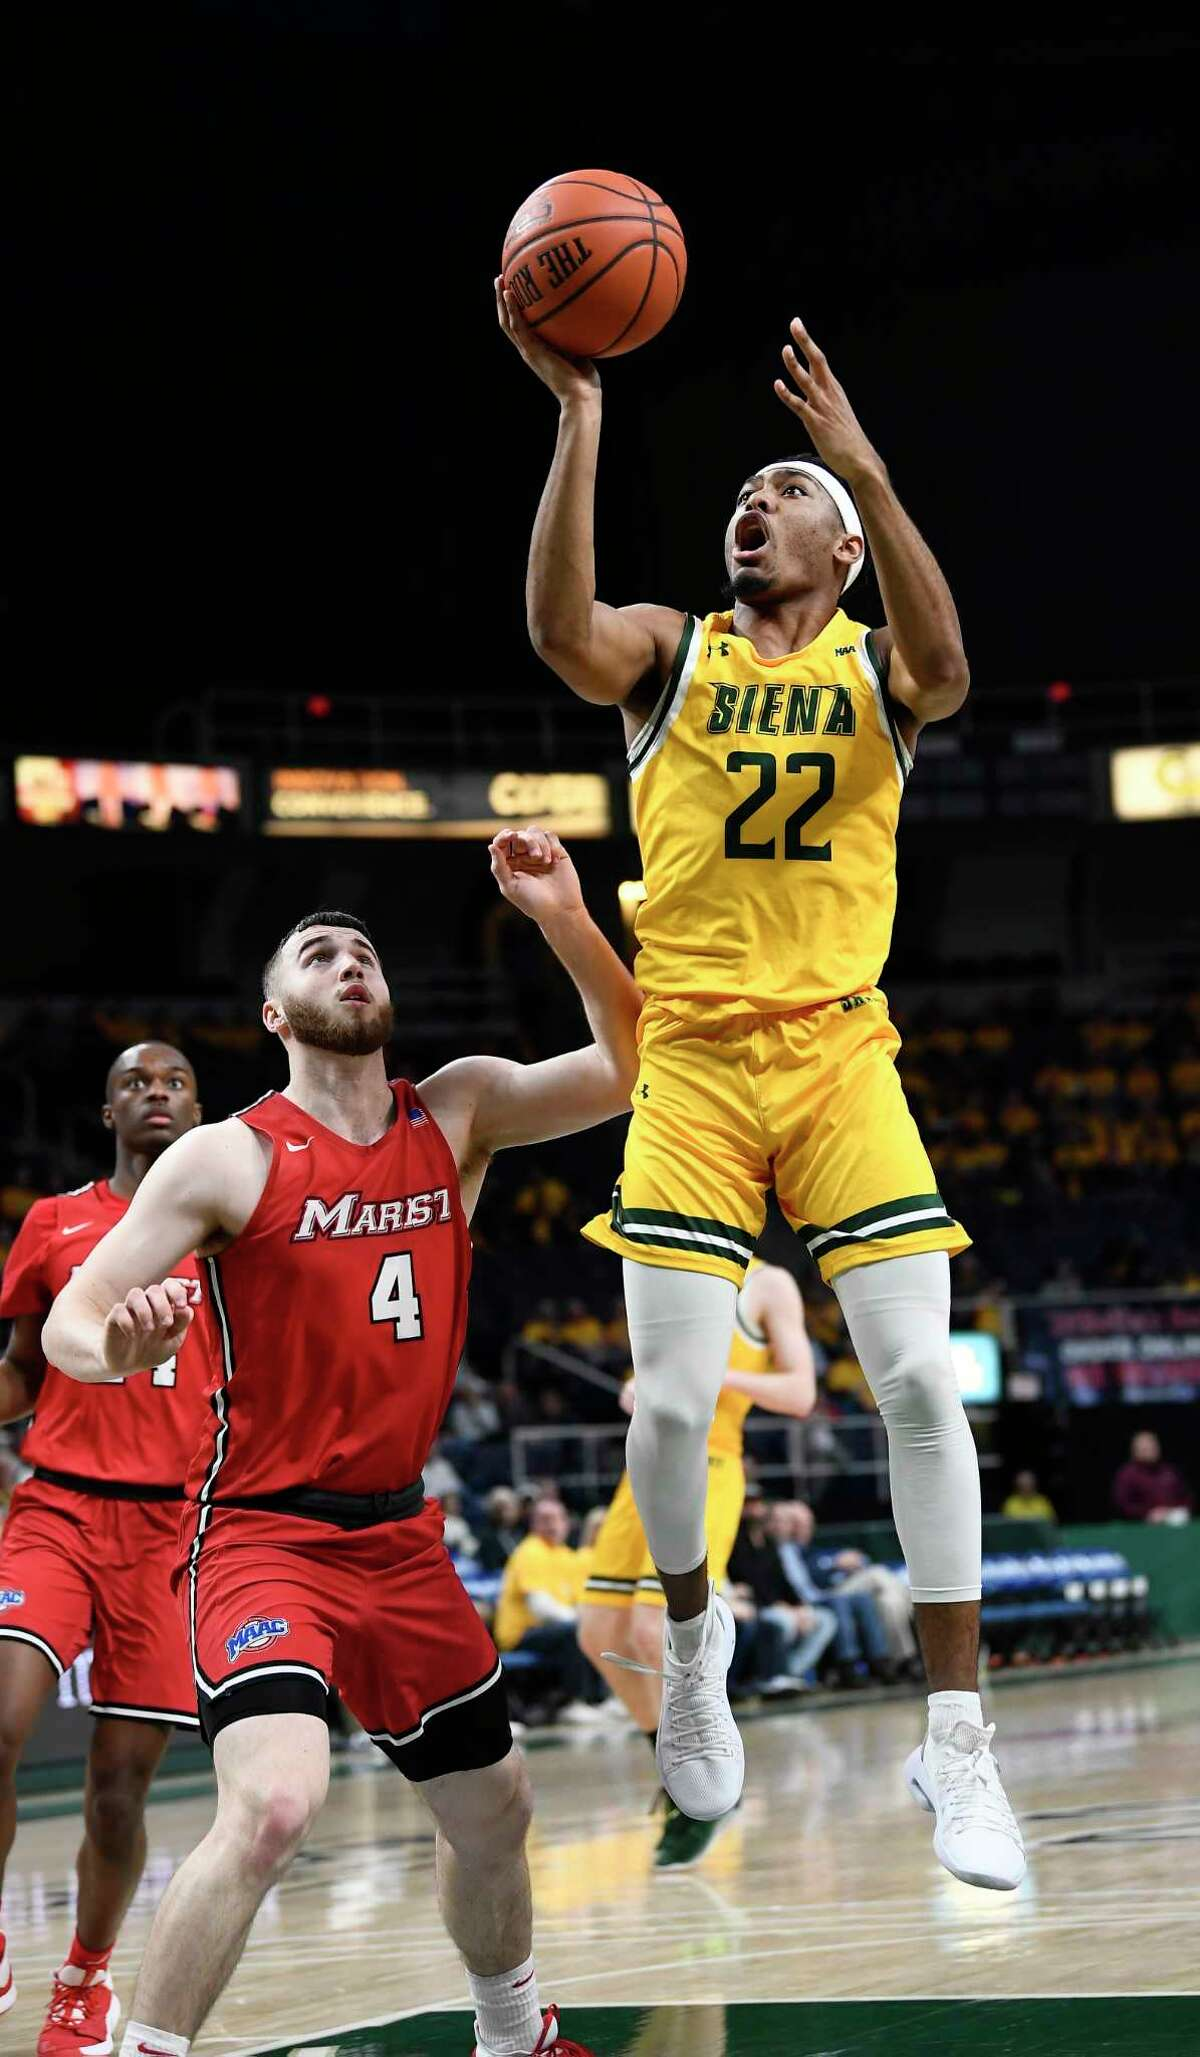 Siena guard Jalen Pickett (22) puts up a shot against Marist guard Tyler Sagl (4) during the second half of an NCAA basketball game Friday, Jan. 24, 2020, in Albany, N.Y. Siena won 70-57. (Hans Pennink / Special to the Times Union) ORG XMIT: 012520_siena_HP117